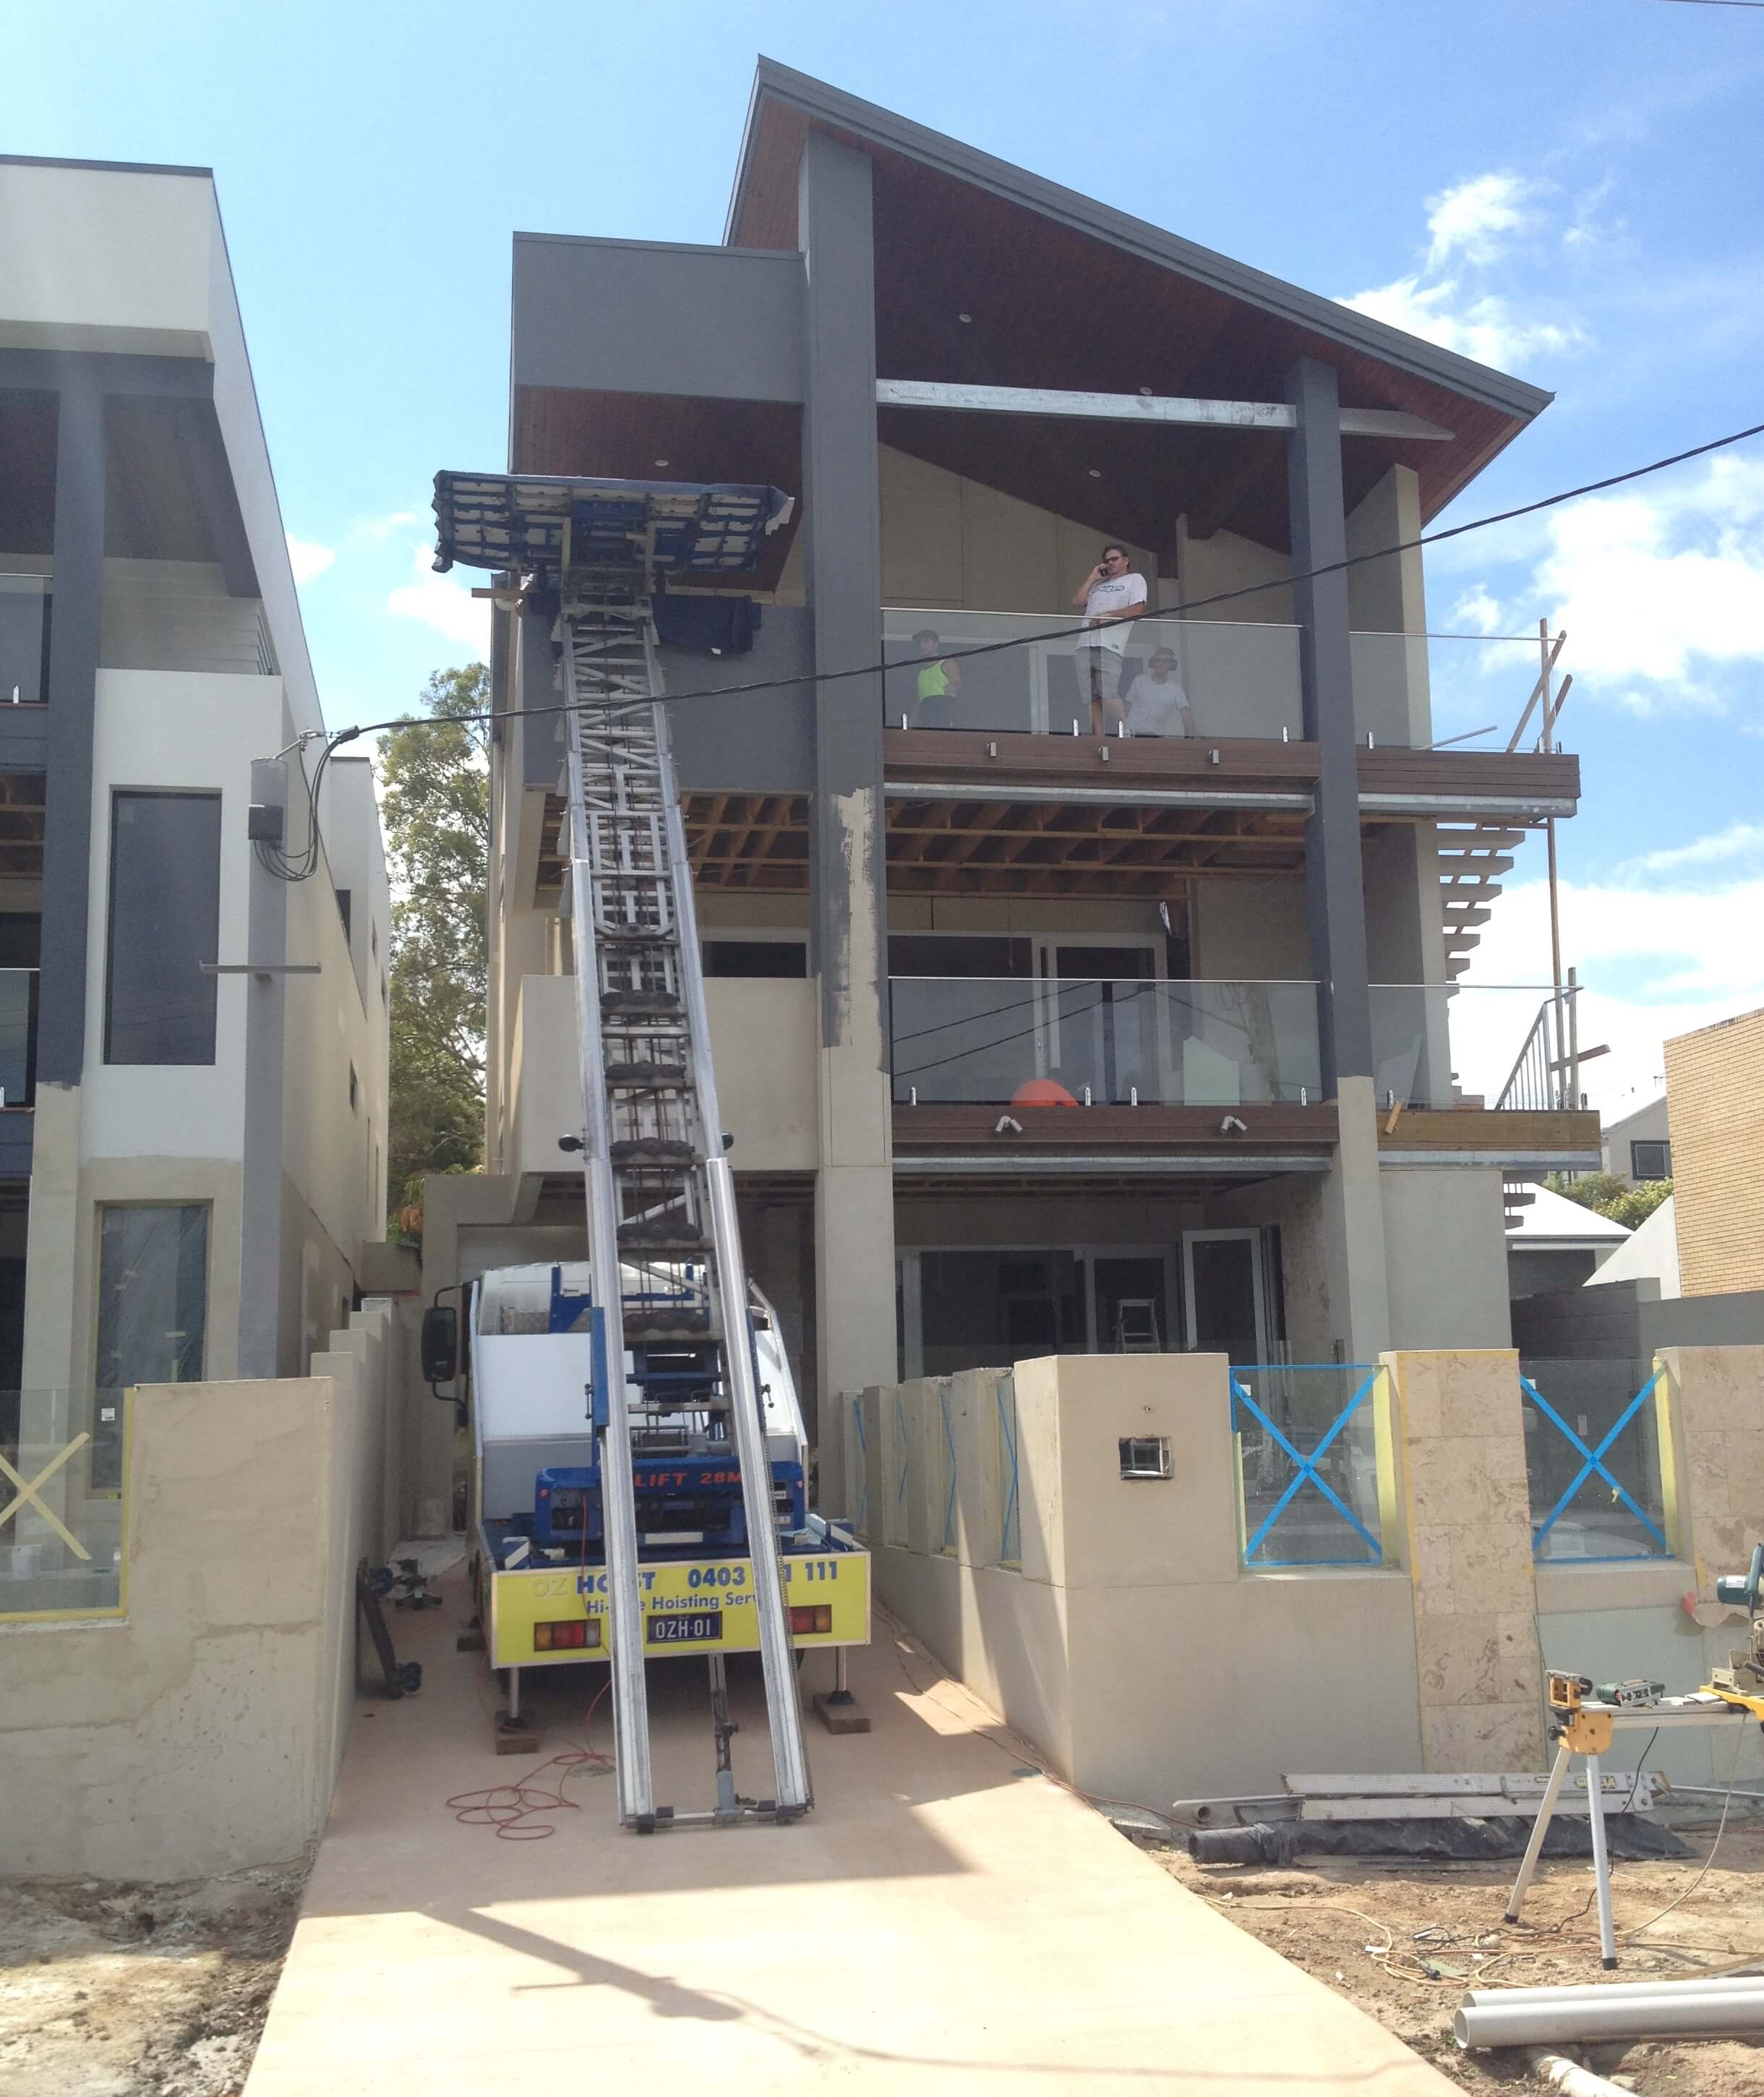 use_crane_hoist_truck_lift_on_building_site_to_quickly_safely_lift_building_materials_brisbane_gold_coast_sunshine_coast_truck_lift